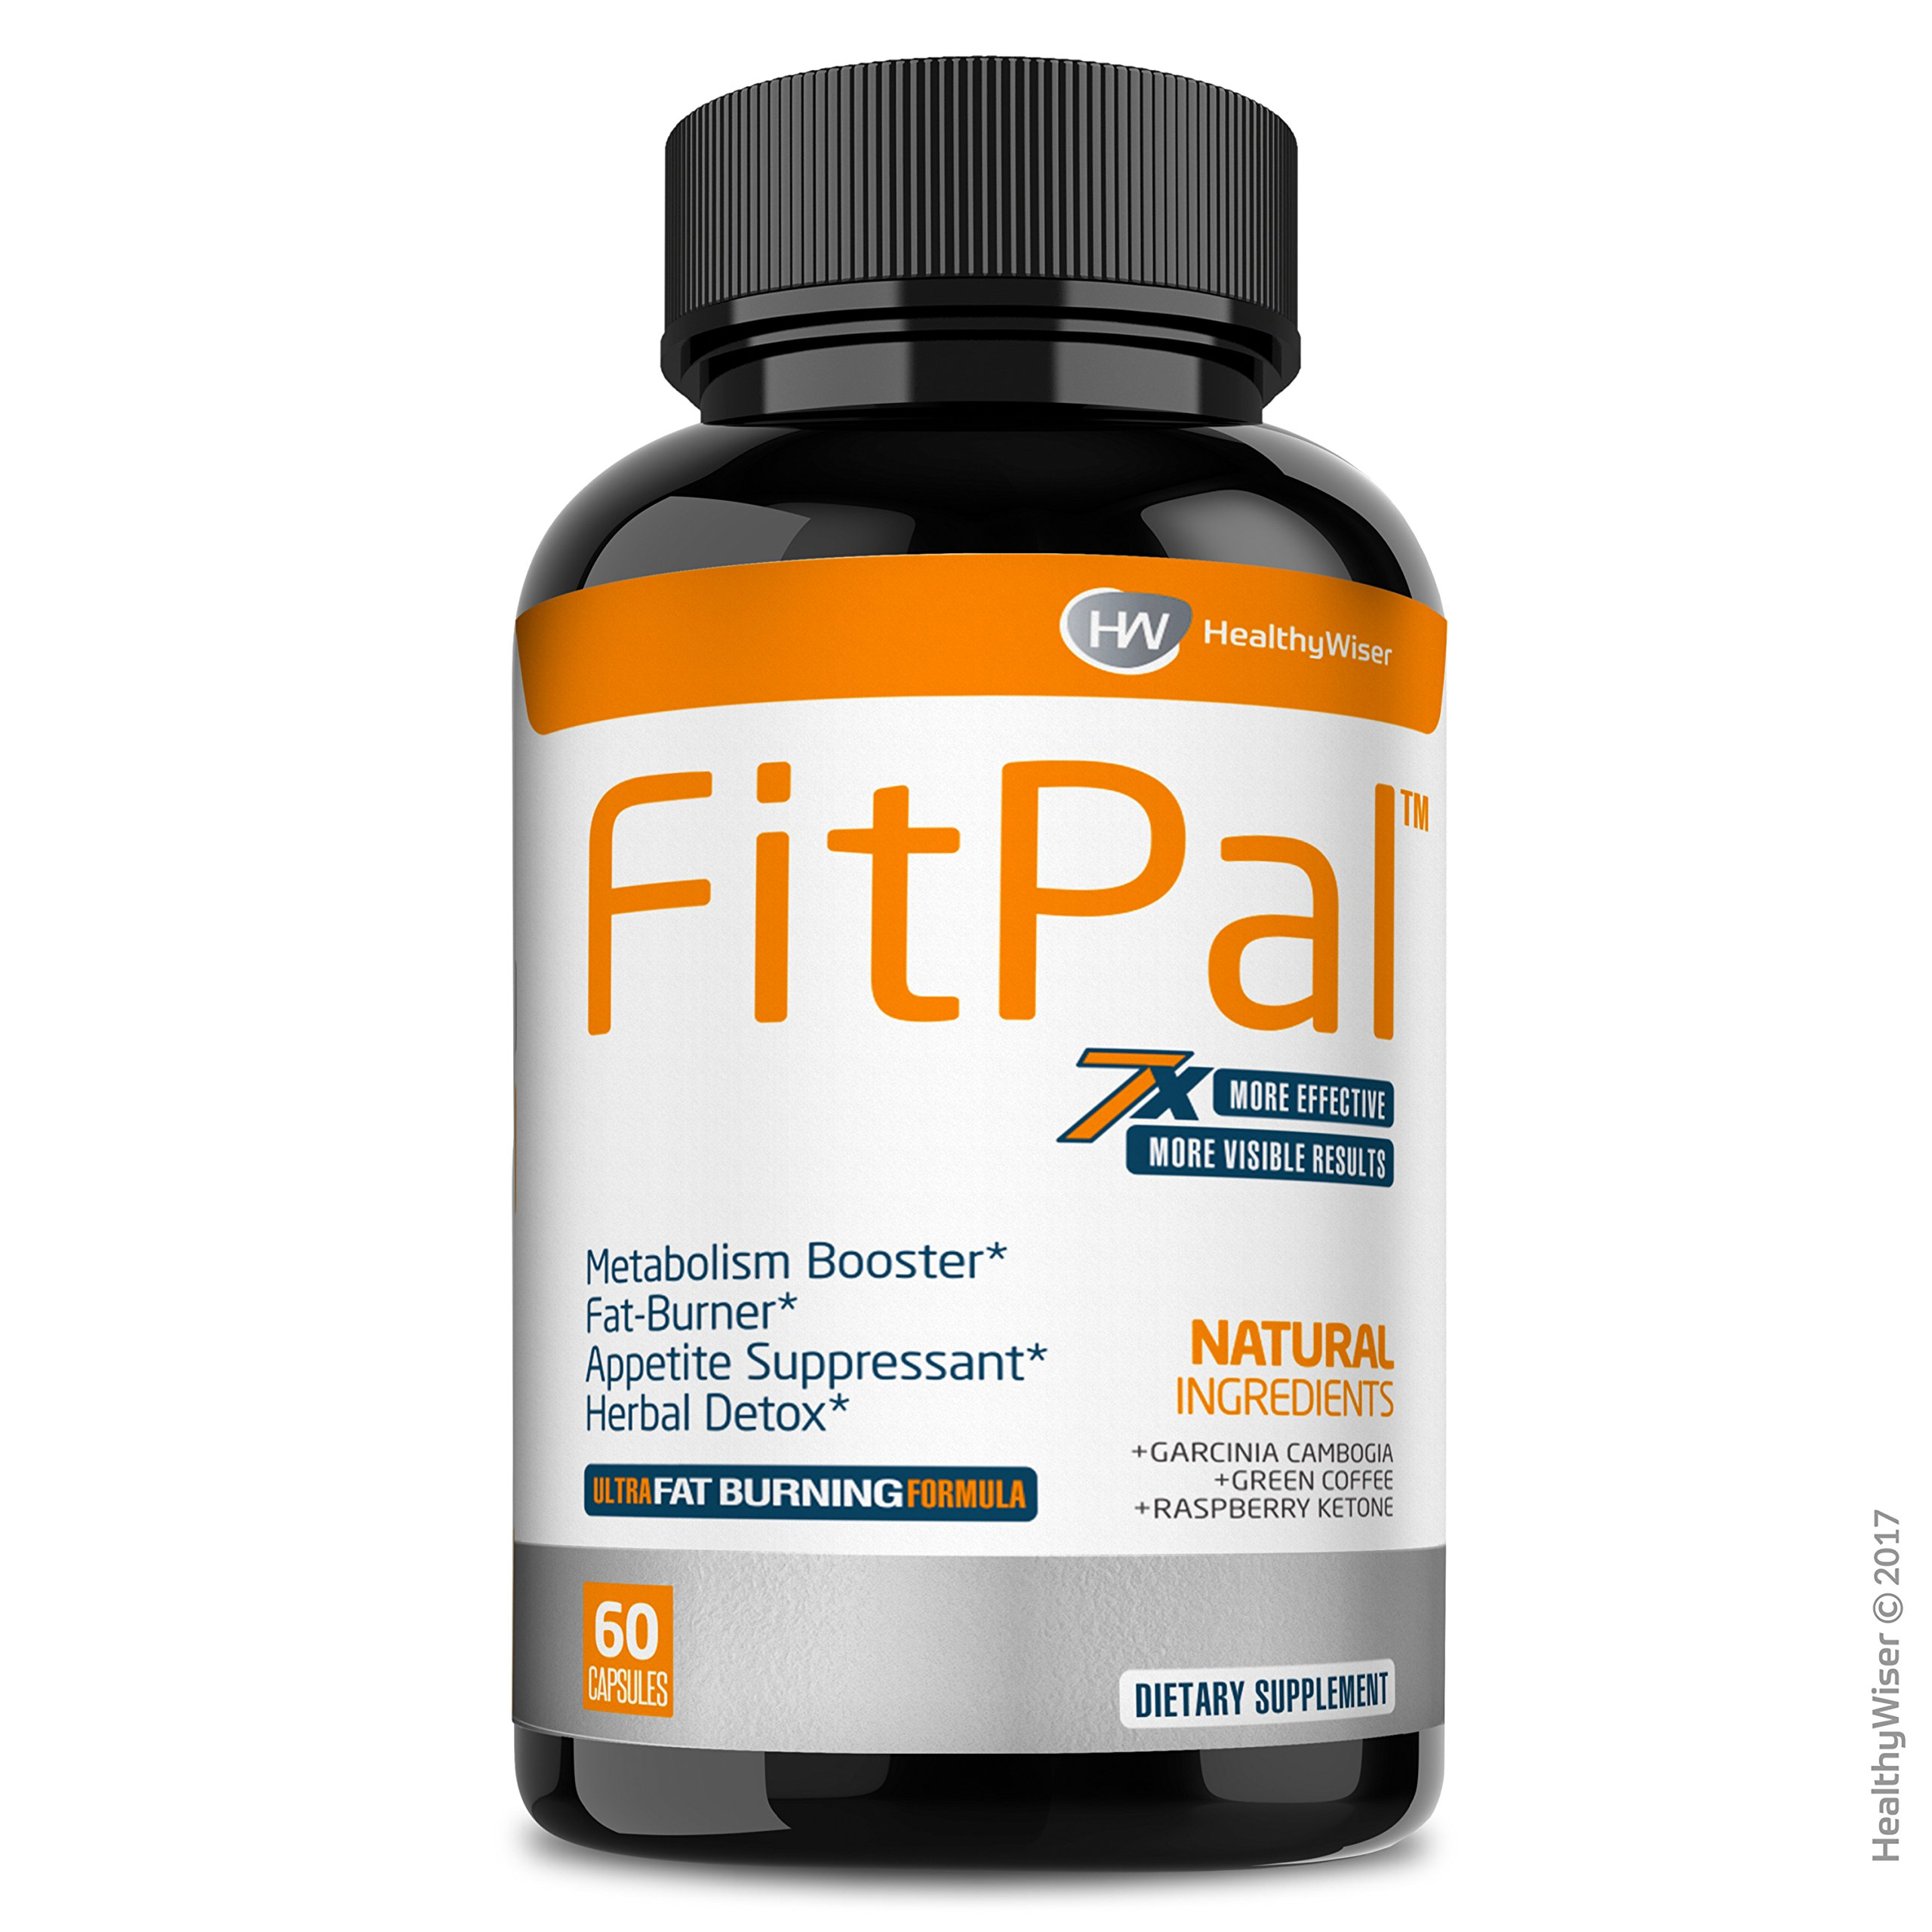 FITPAL™ Natural Thermogenic Fat Burner - Energy and Metabolism Booster Pills with Green Coffee, Garcinia Cambogia & Raspberry Ketones. Effective Herbal Detox and Appetite Suppressant